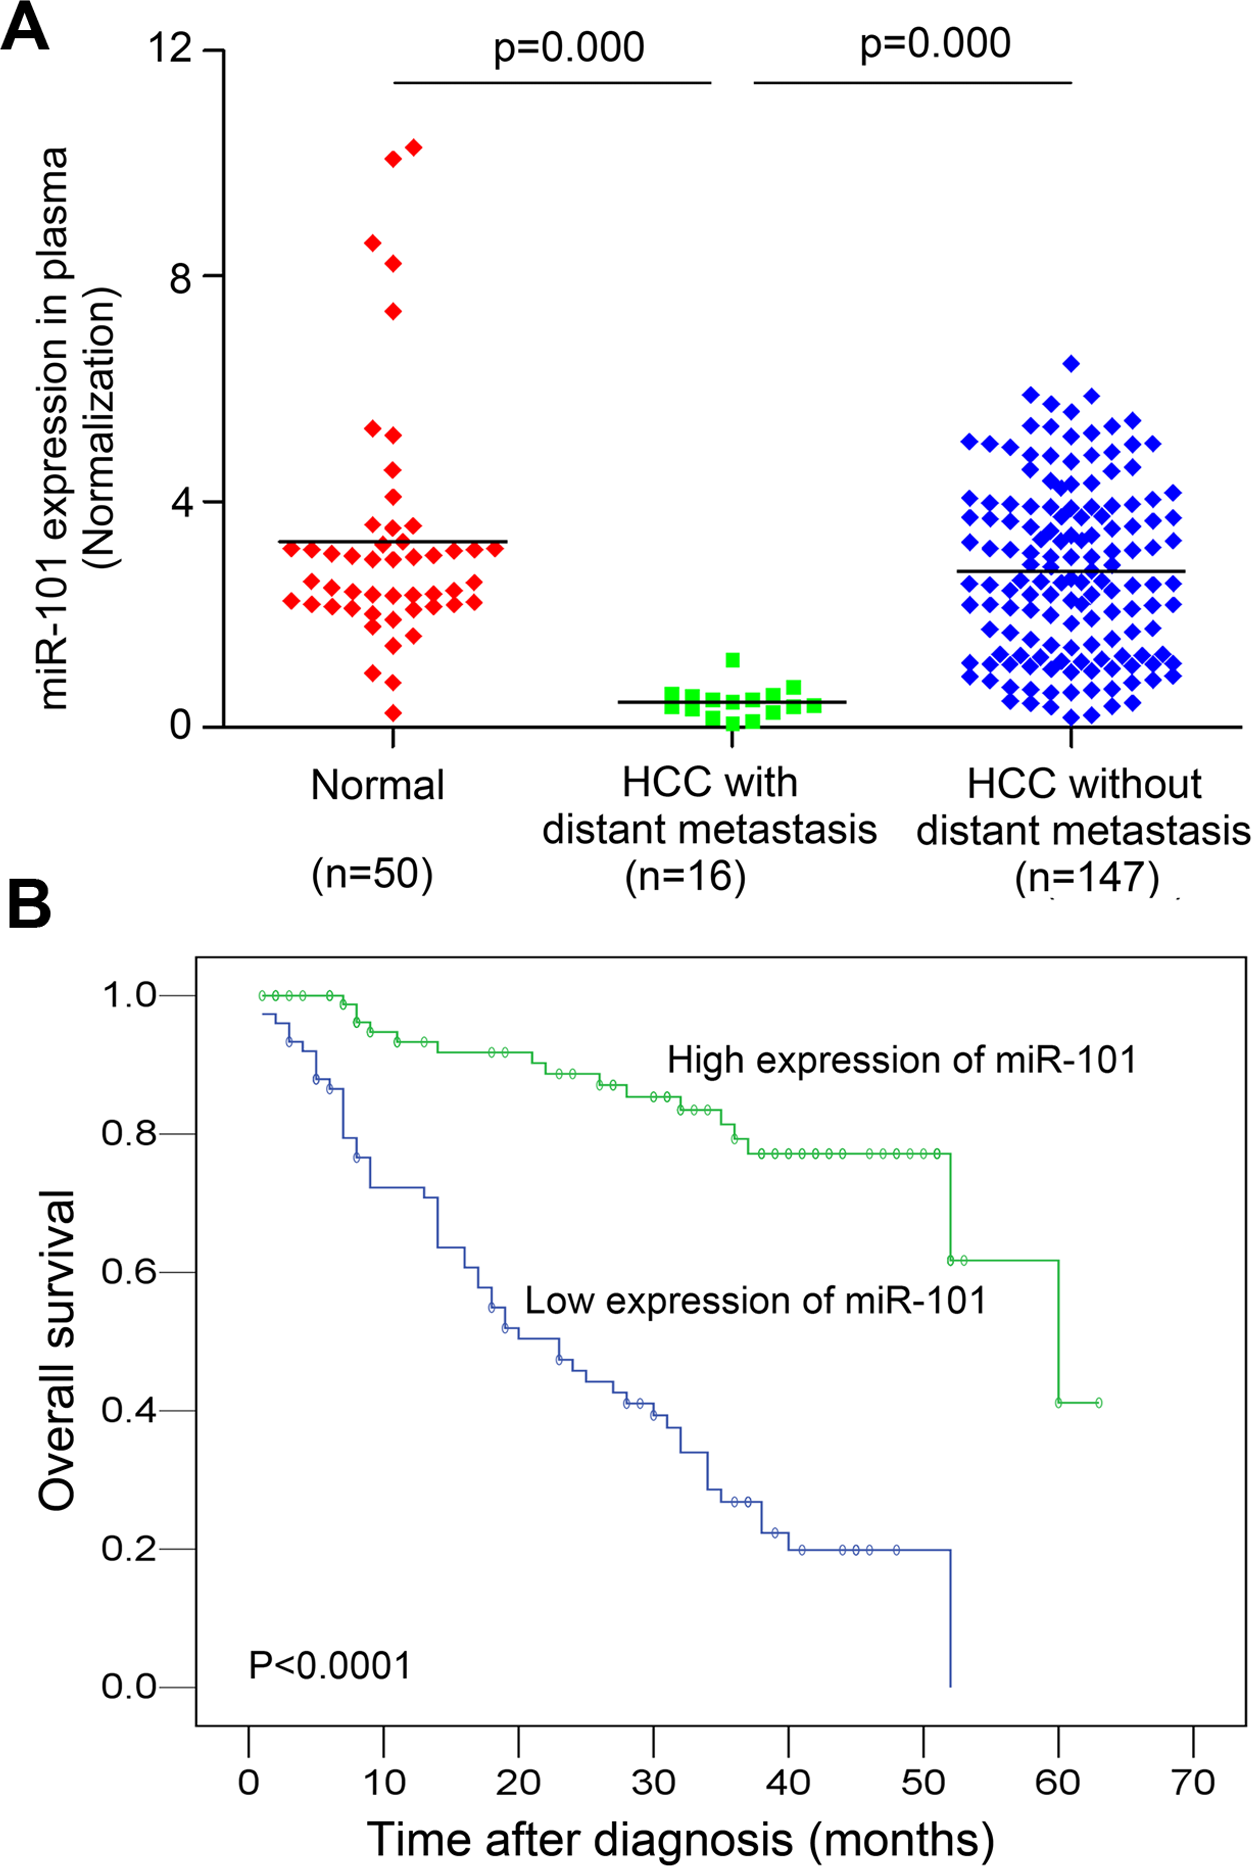 Analysis of miR-101 levels in human plasma samples by real-time PCR and Kaplan-Meier analysis for HCC patients DFS according to the plasma levels of miR-101.